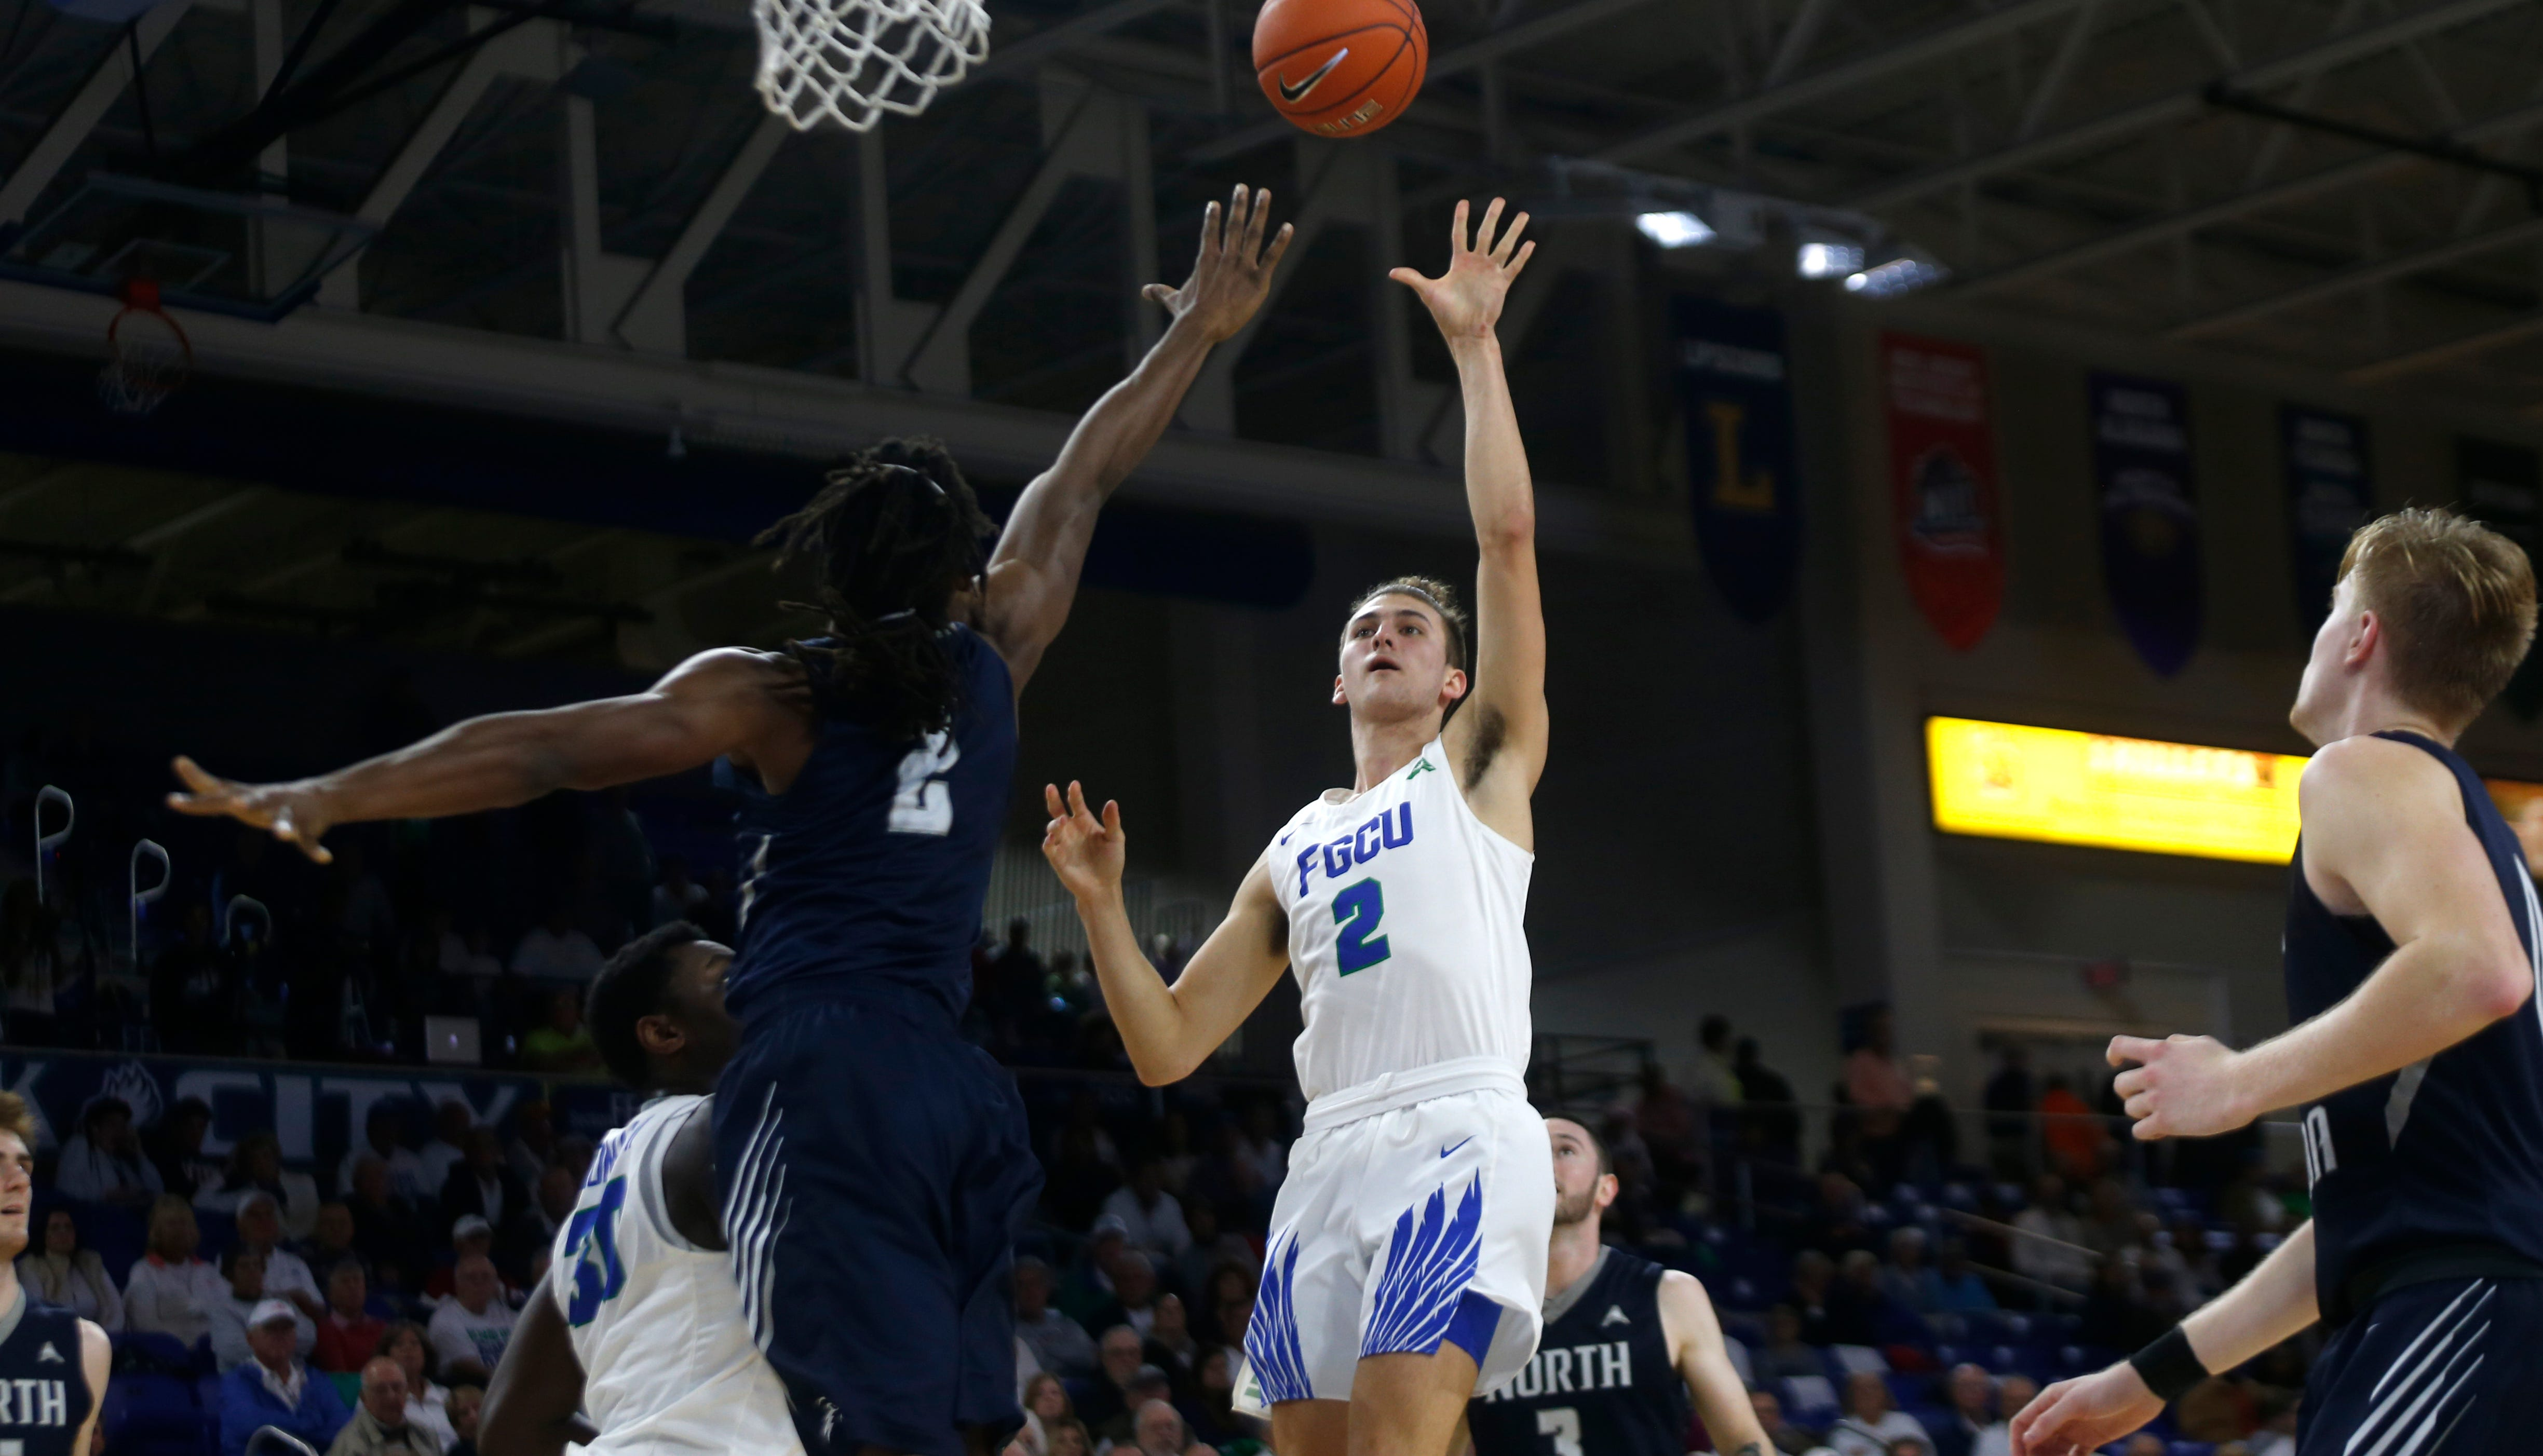 Florida Gulf Coast University's Caleb Catto shoot the ball over the University of North Florida's Wajid Aminu, Saturday, Jan. 27, 2019, at Alico Arena in Fort Myers.